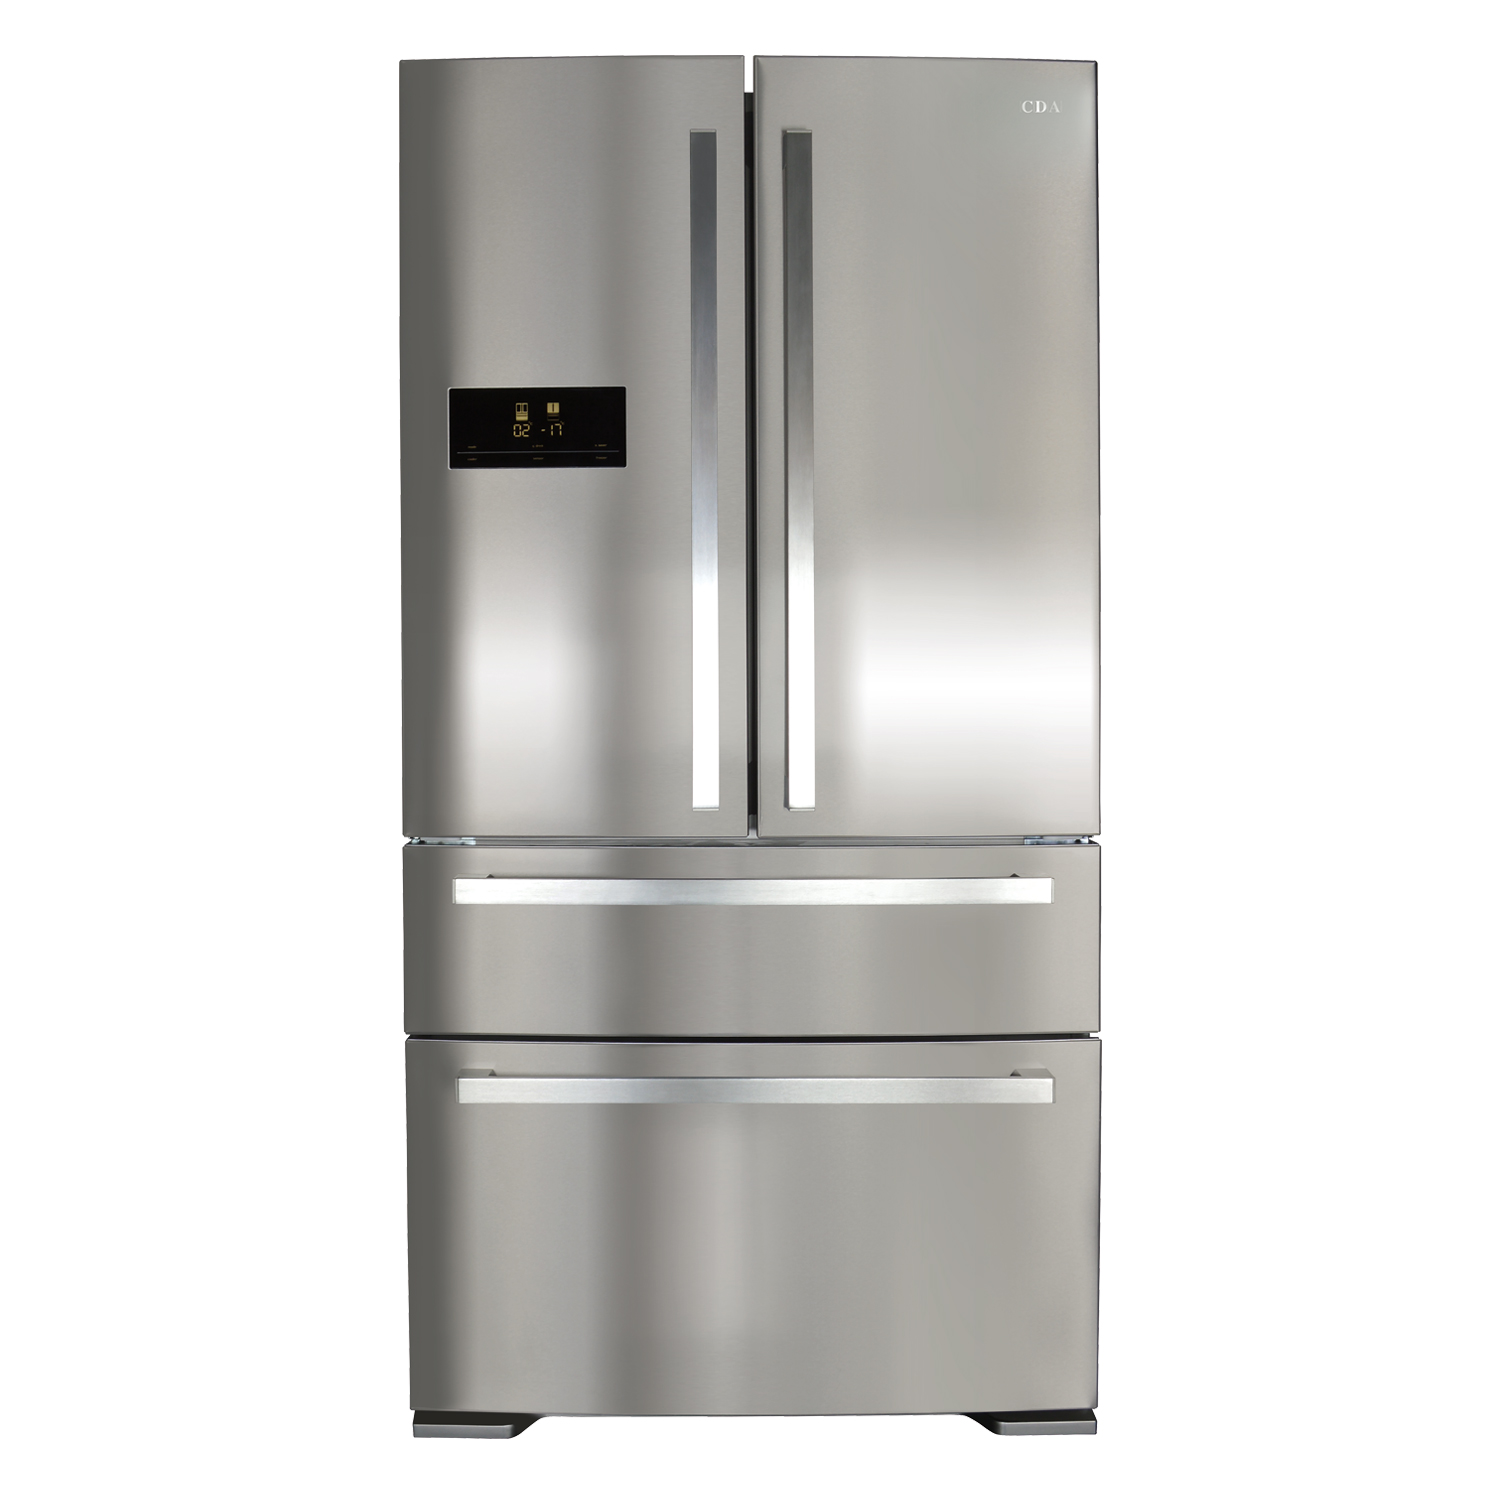 refrigerators zm refrigerator in with oeh kitchen qv collar cp door touch iq appliances drawer all controls built freezer electrolux single